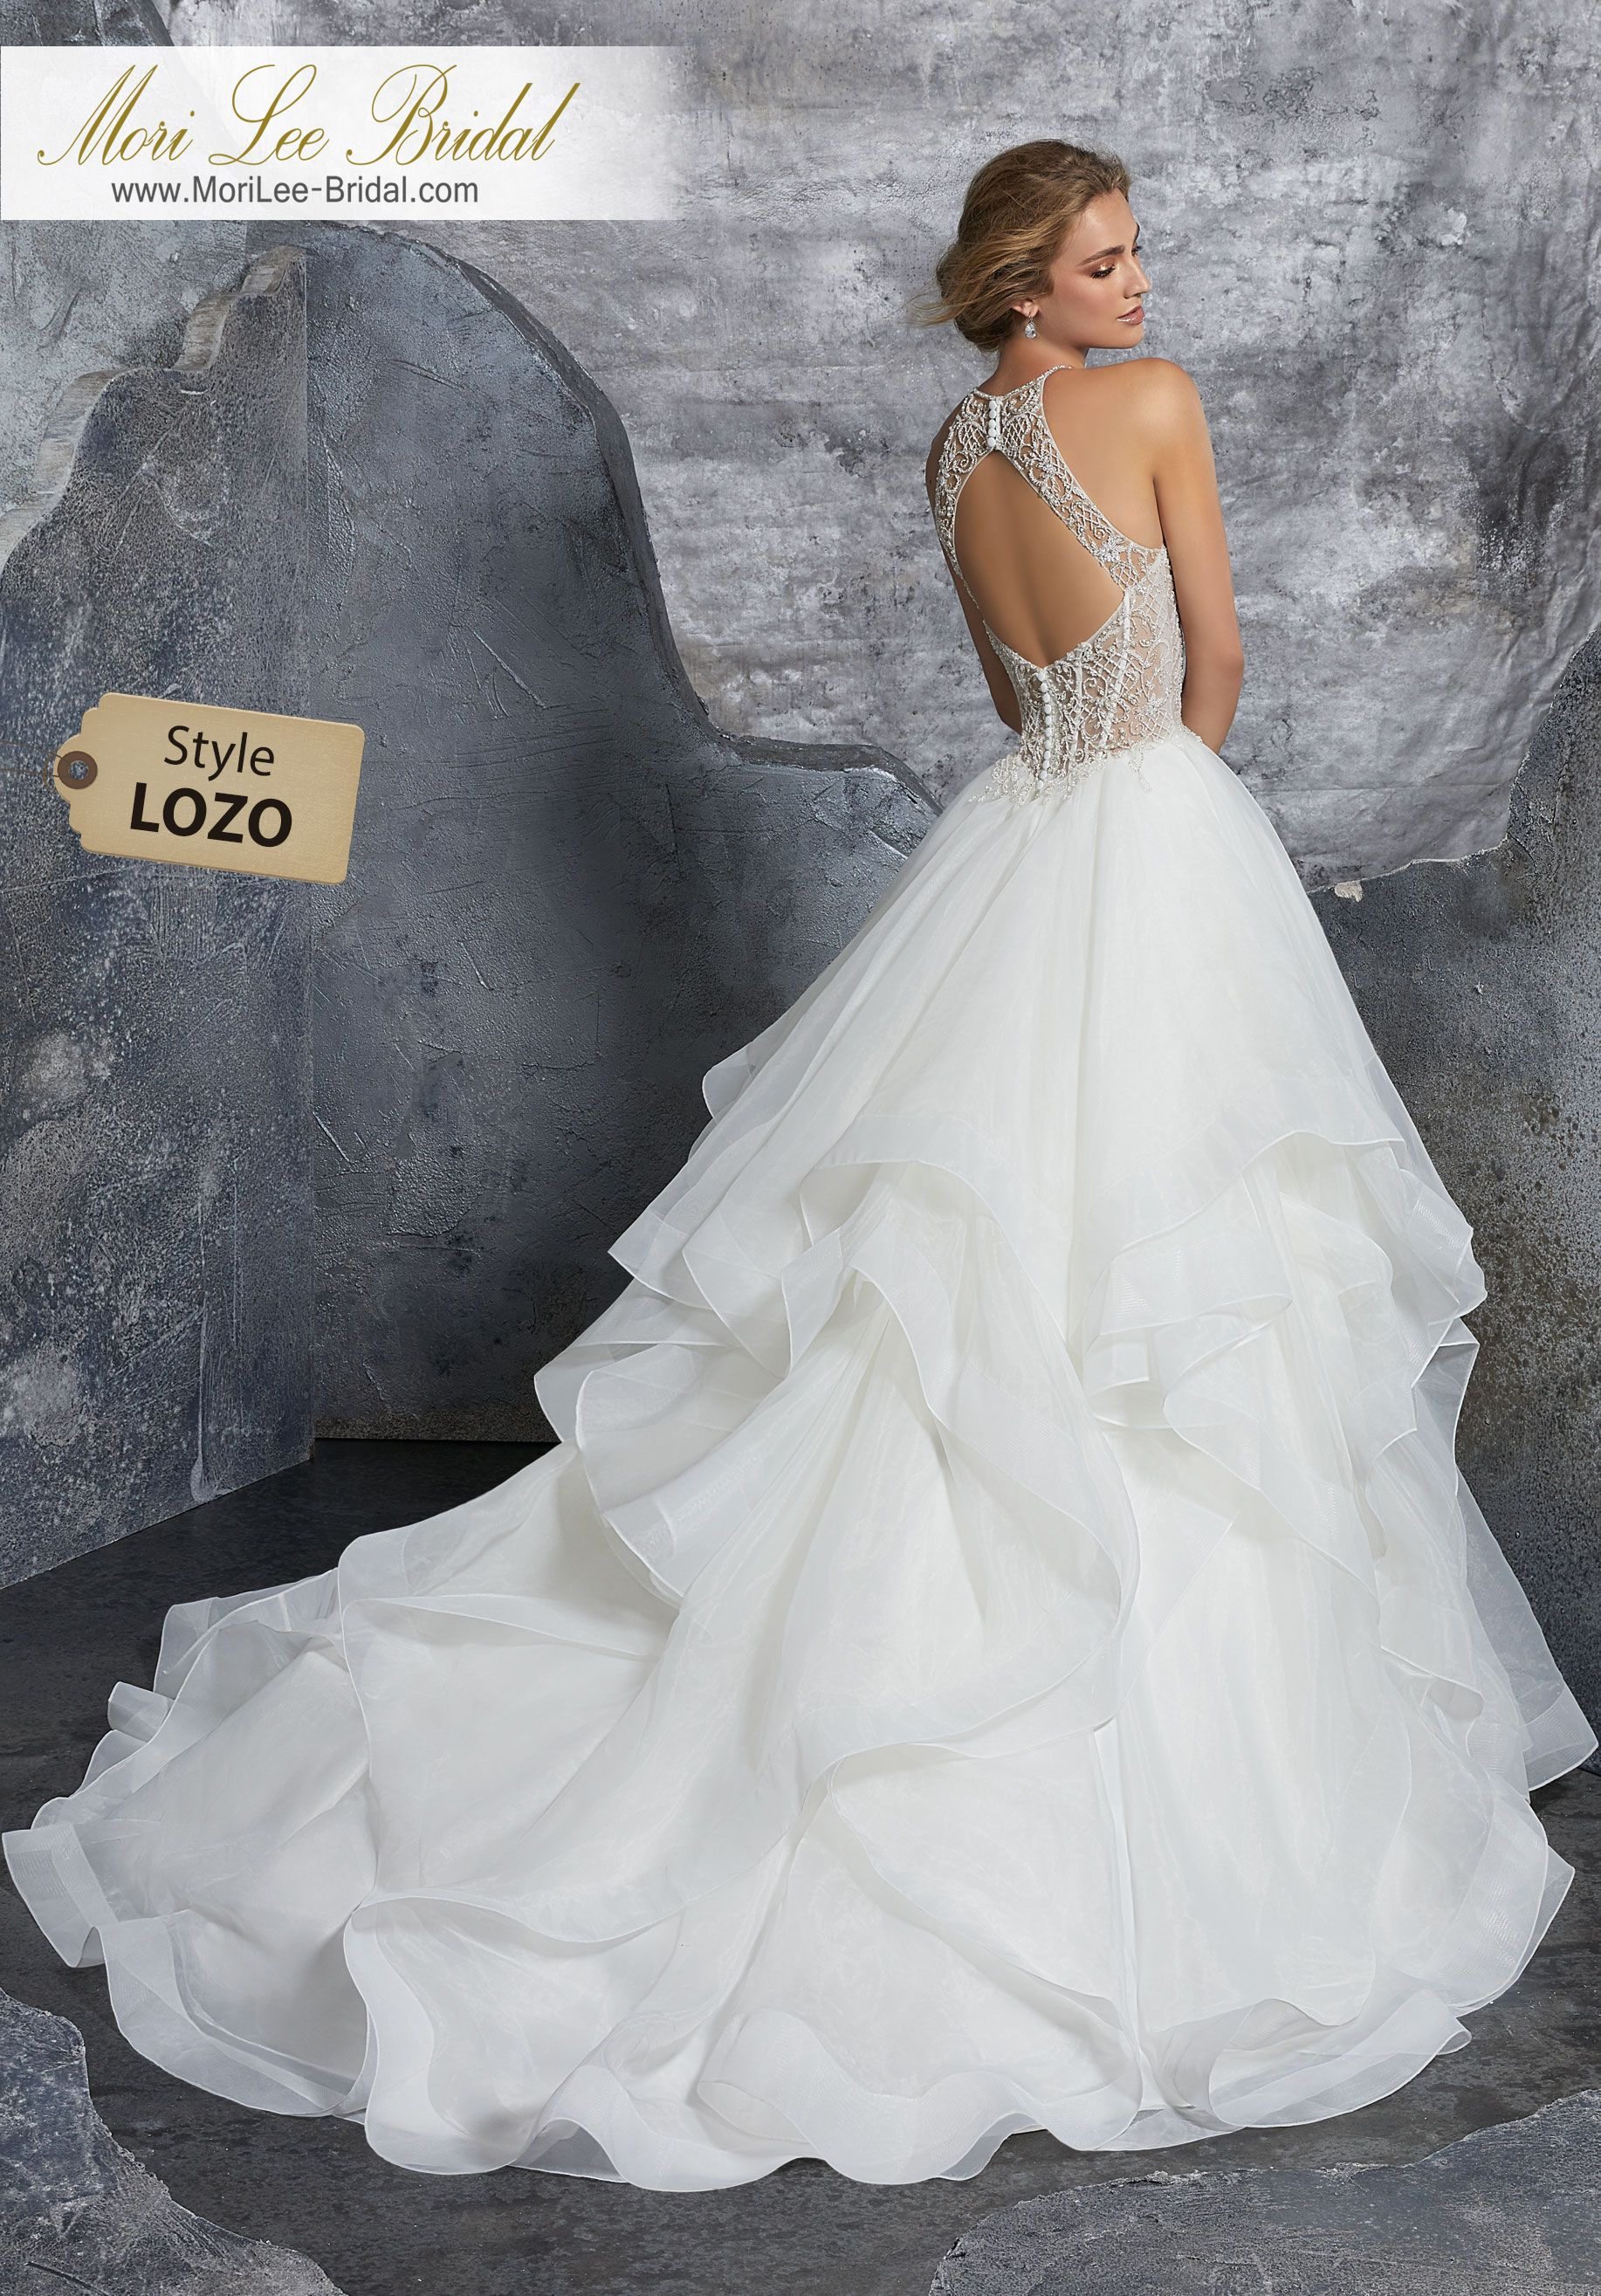 Style lozo kali wedding dress dreamy bridal ballgown featuring a